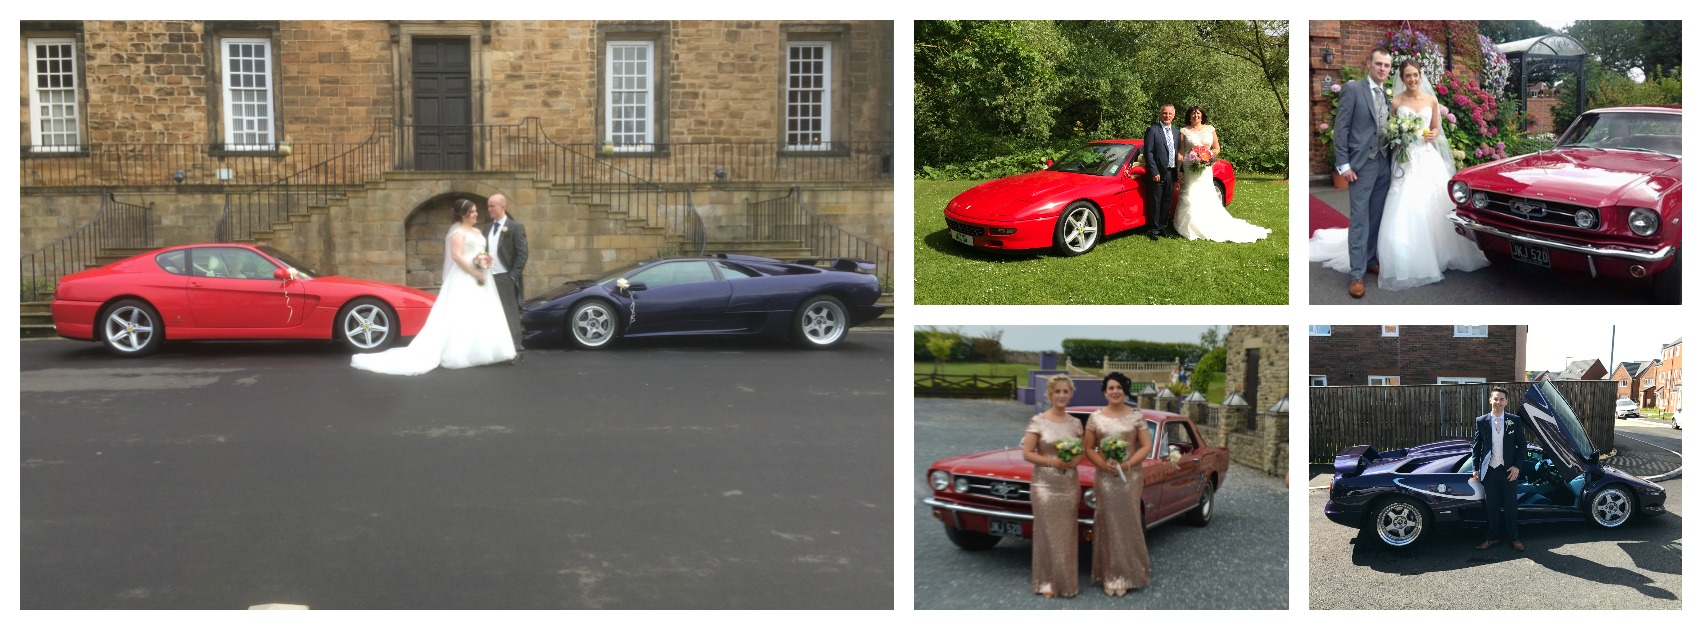 Supercar Weddings 5 picture wide collage